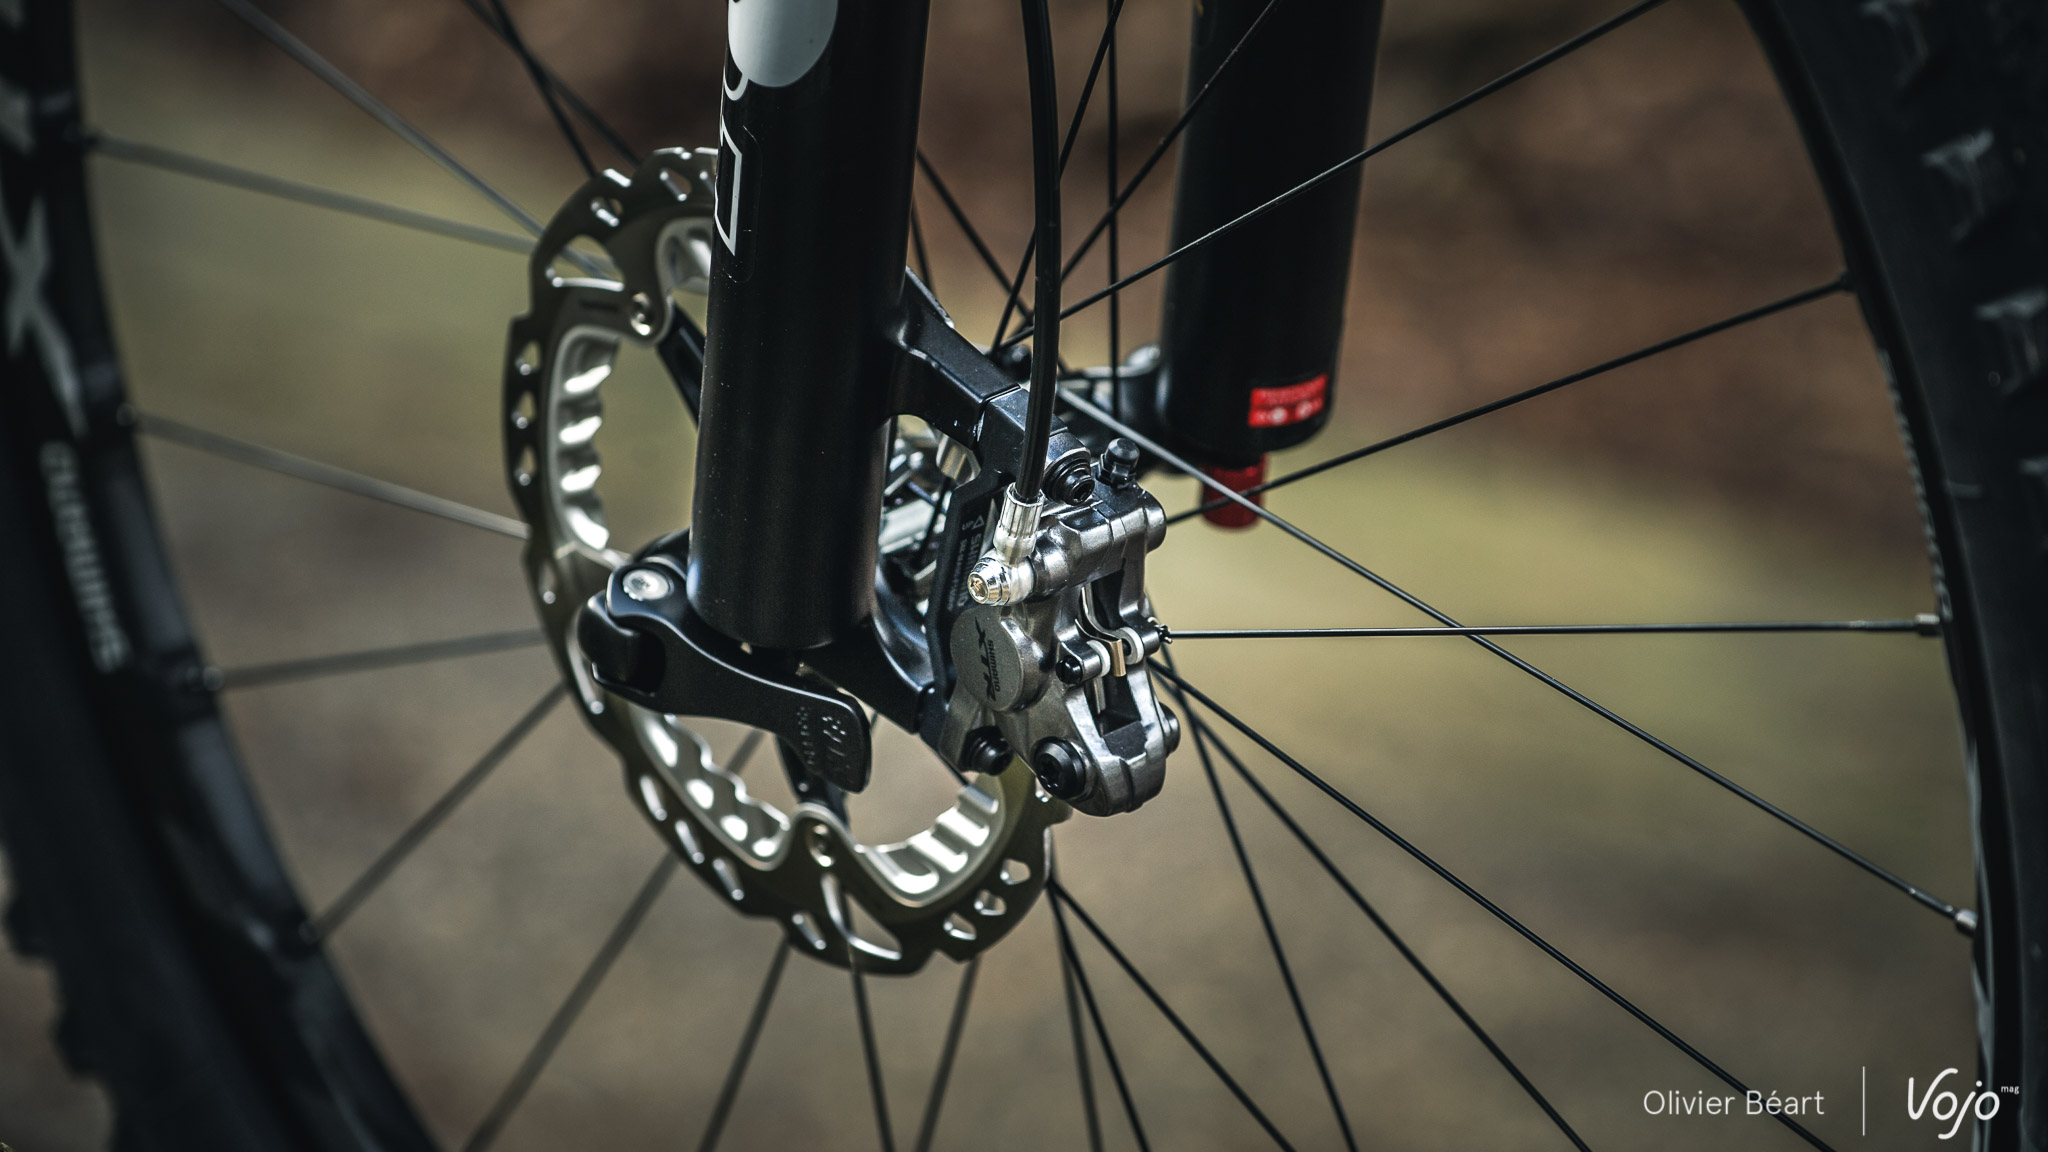 shimano_xtr_freins_test_copyright_obeart_vojomag-9